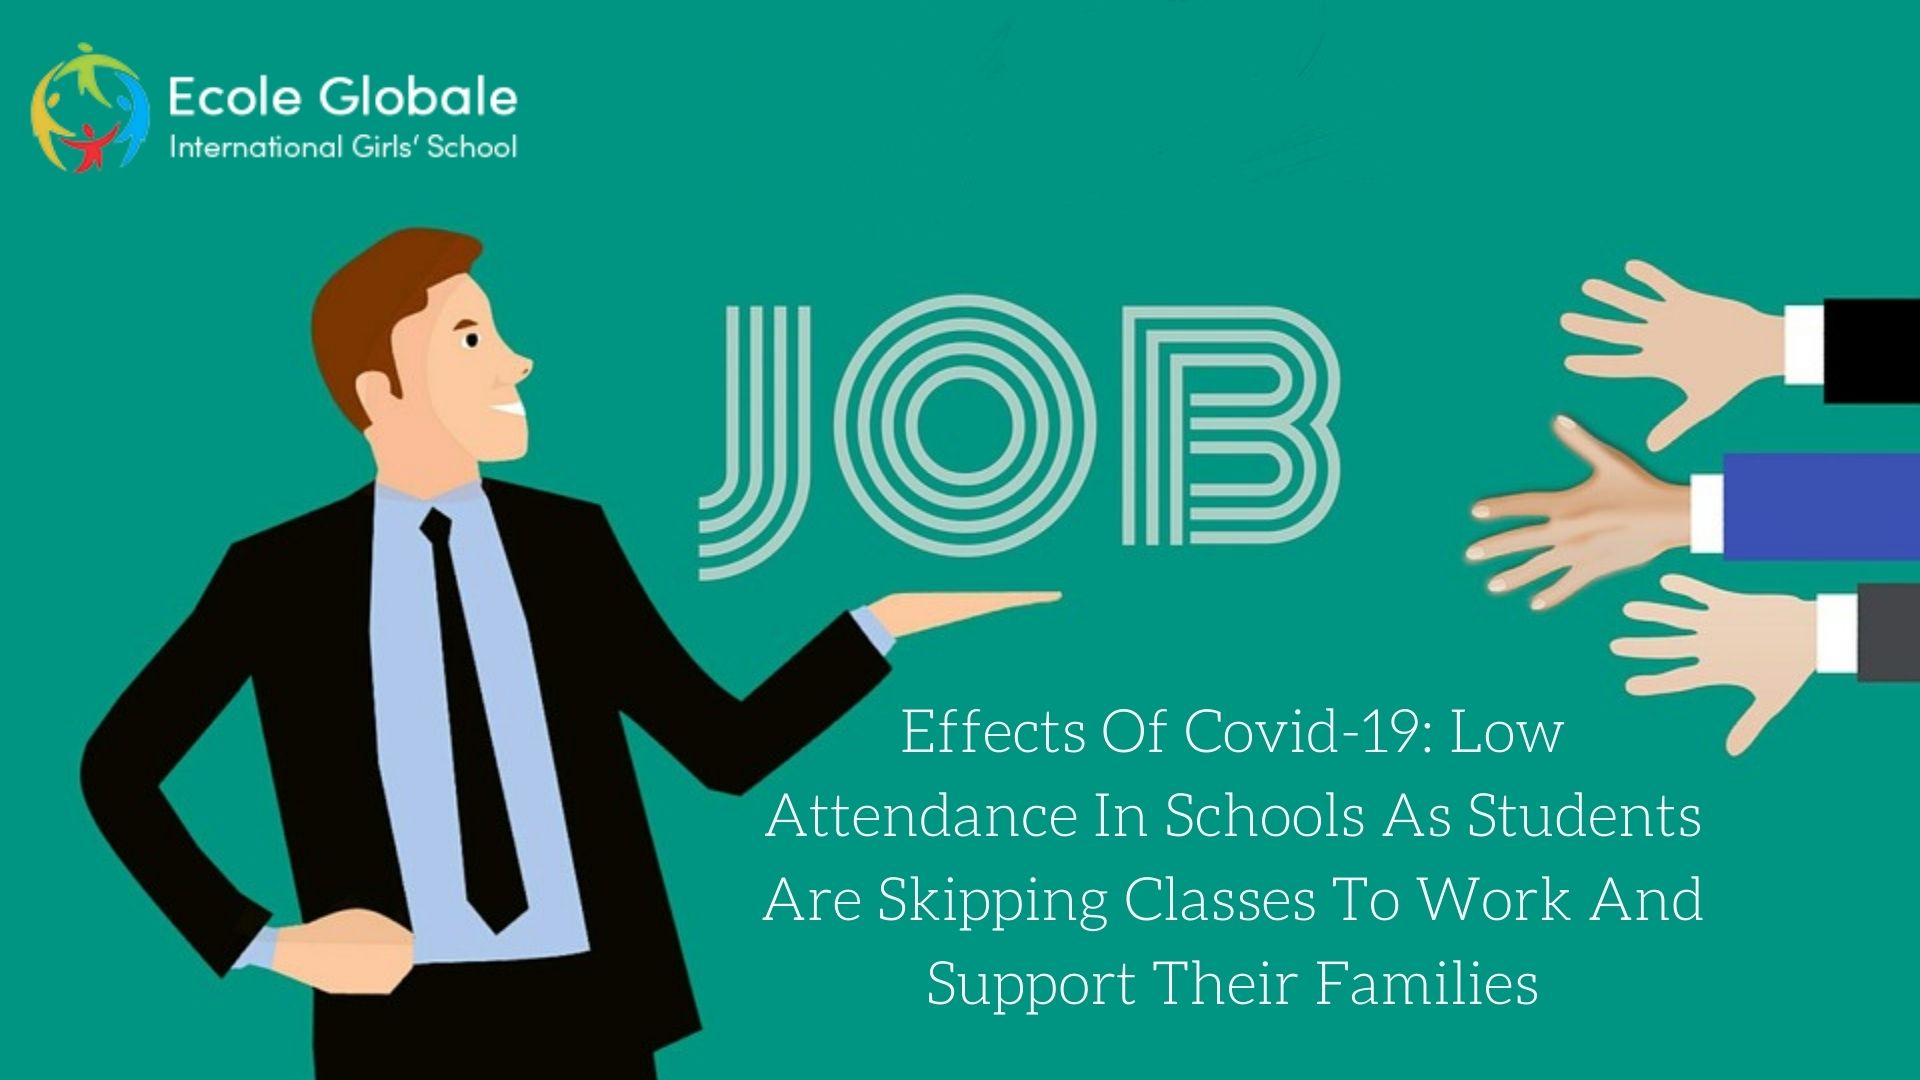 Effects Of Covid-19: Low Attendance In Schools As Students Are Skipping Classes To Work And Support Their Families